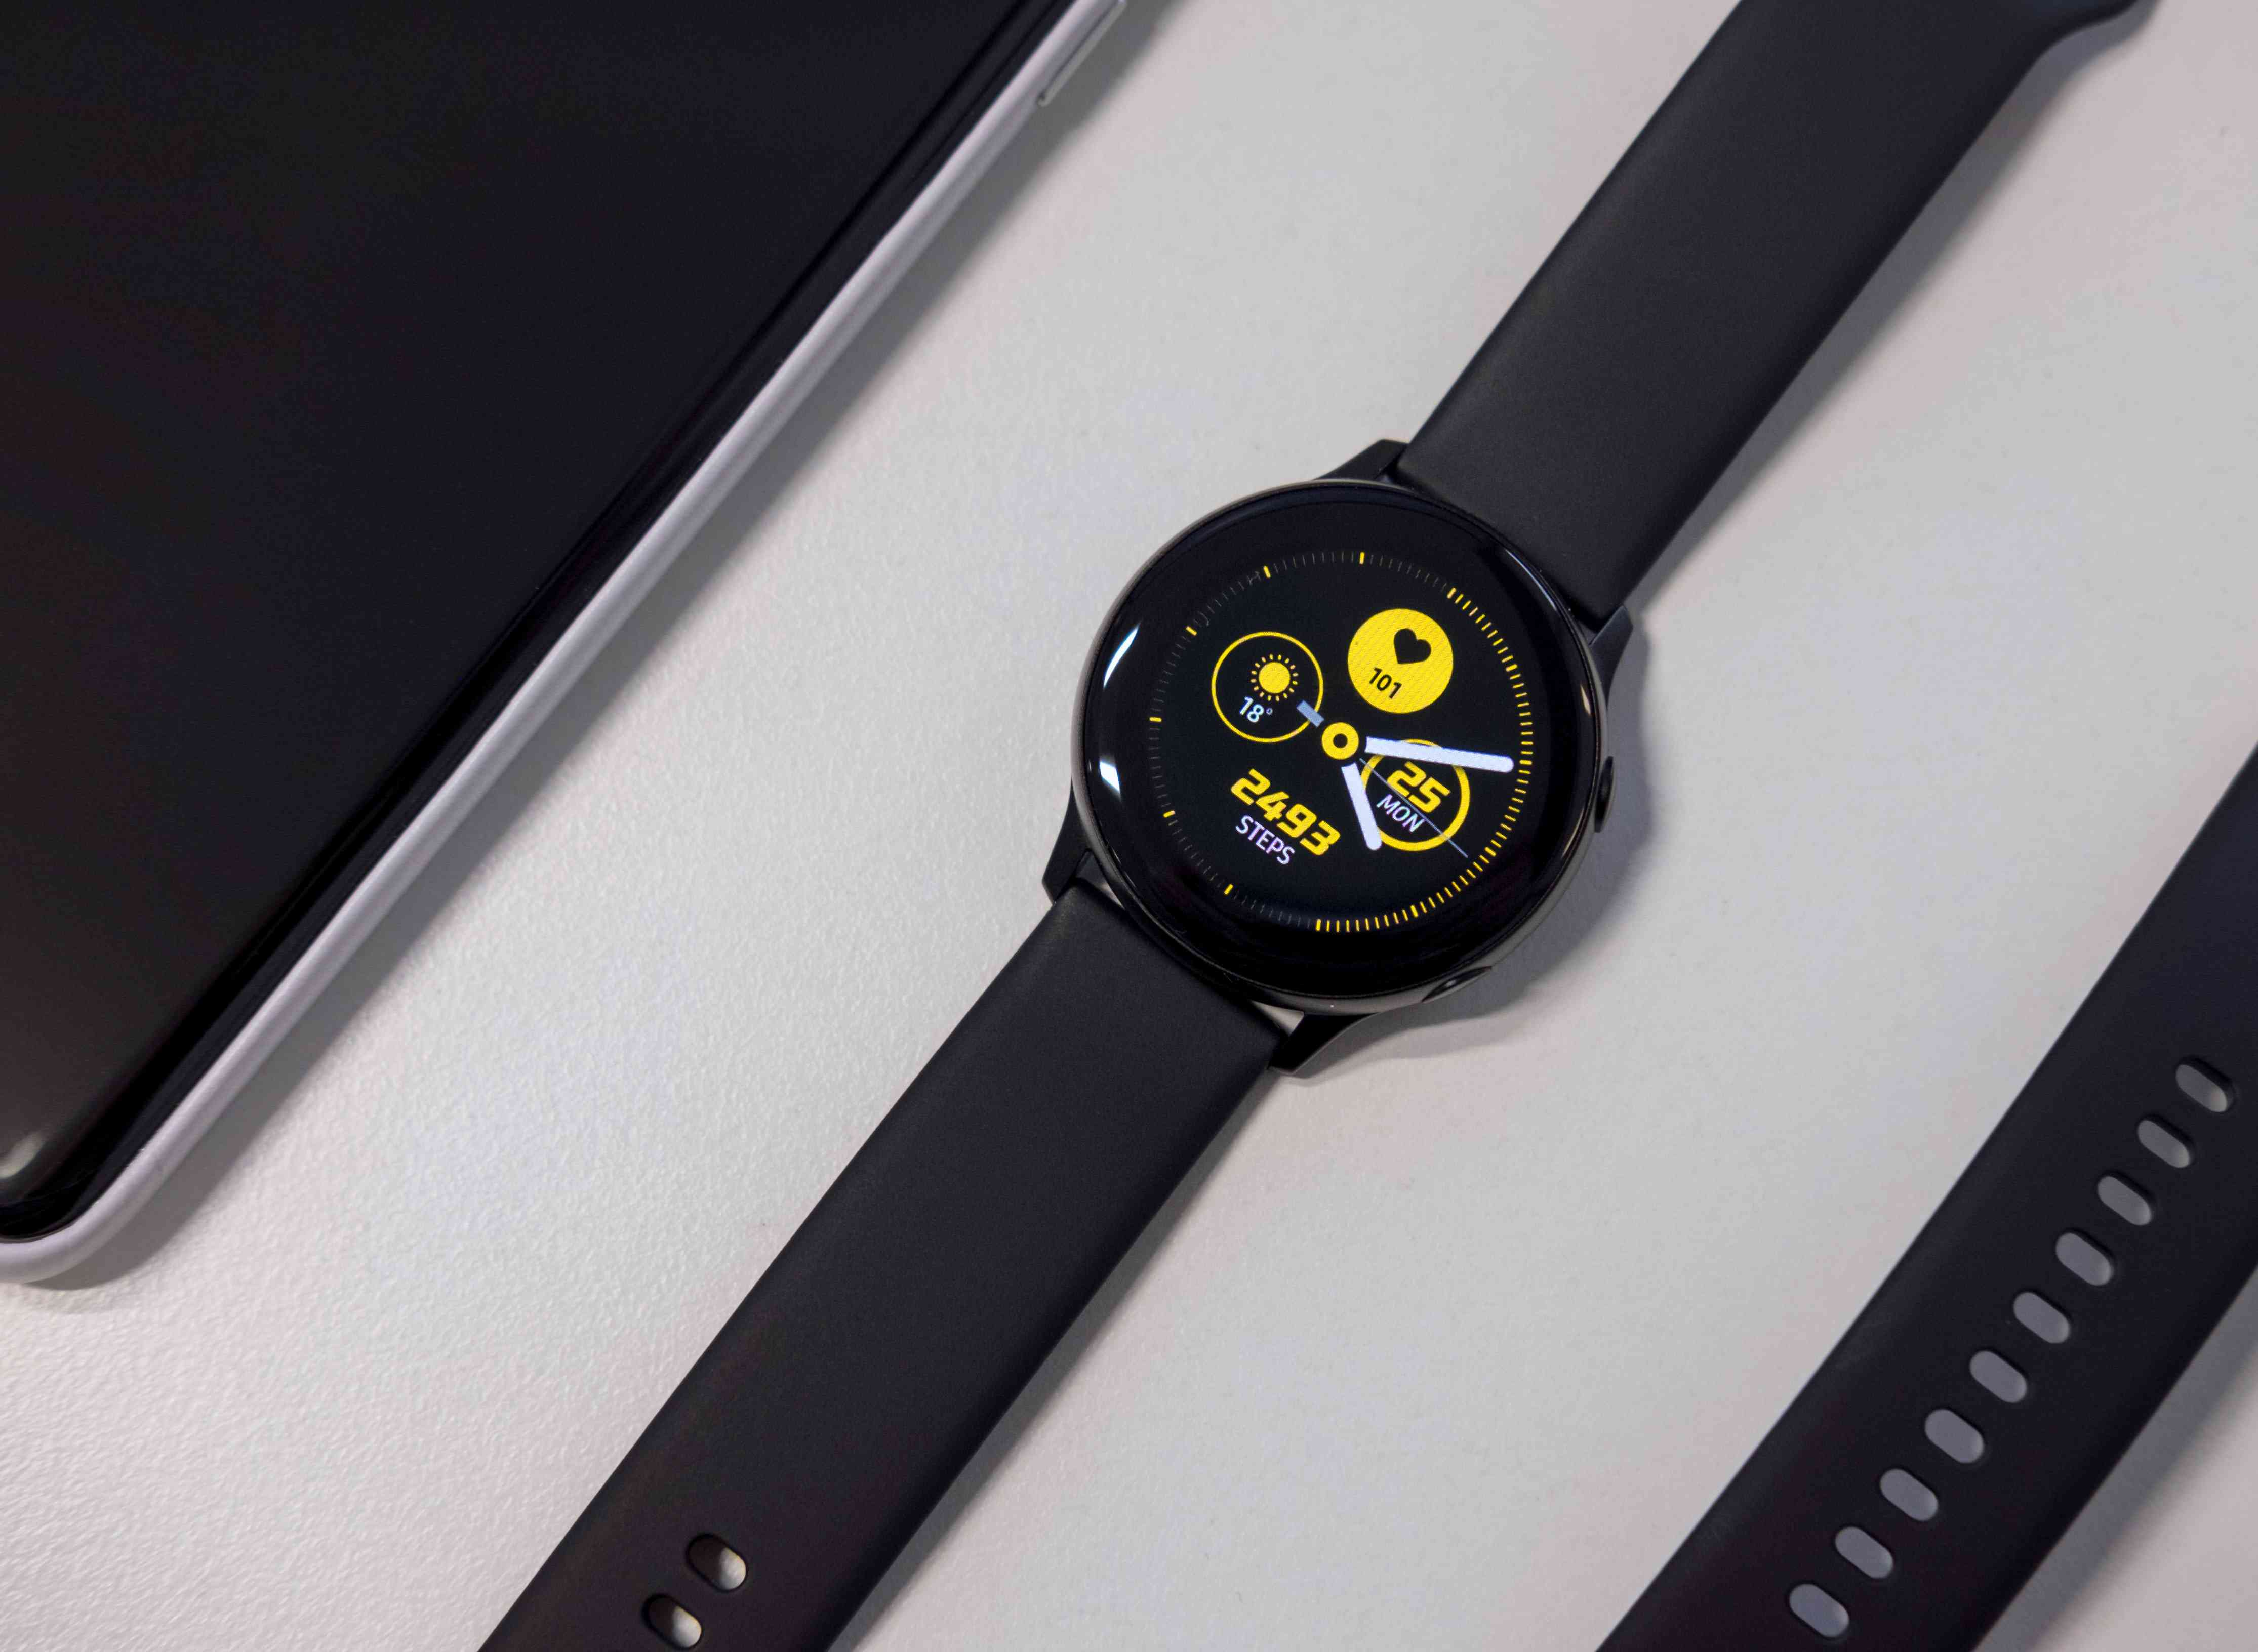 A black smartwatch with yellow complications showing on the face.